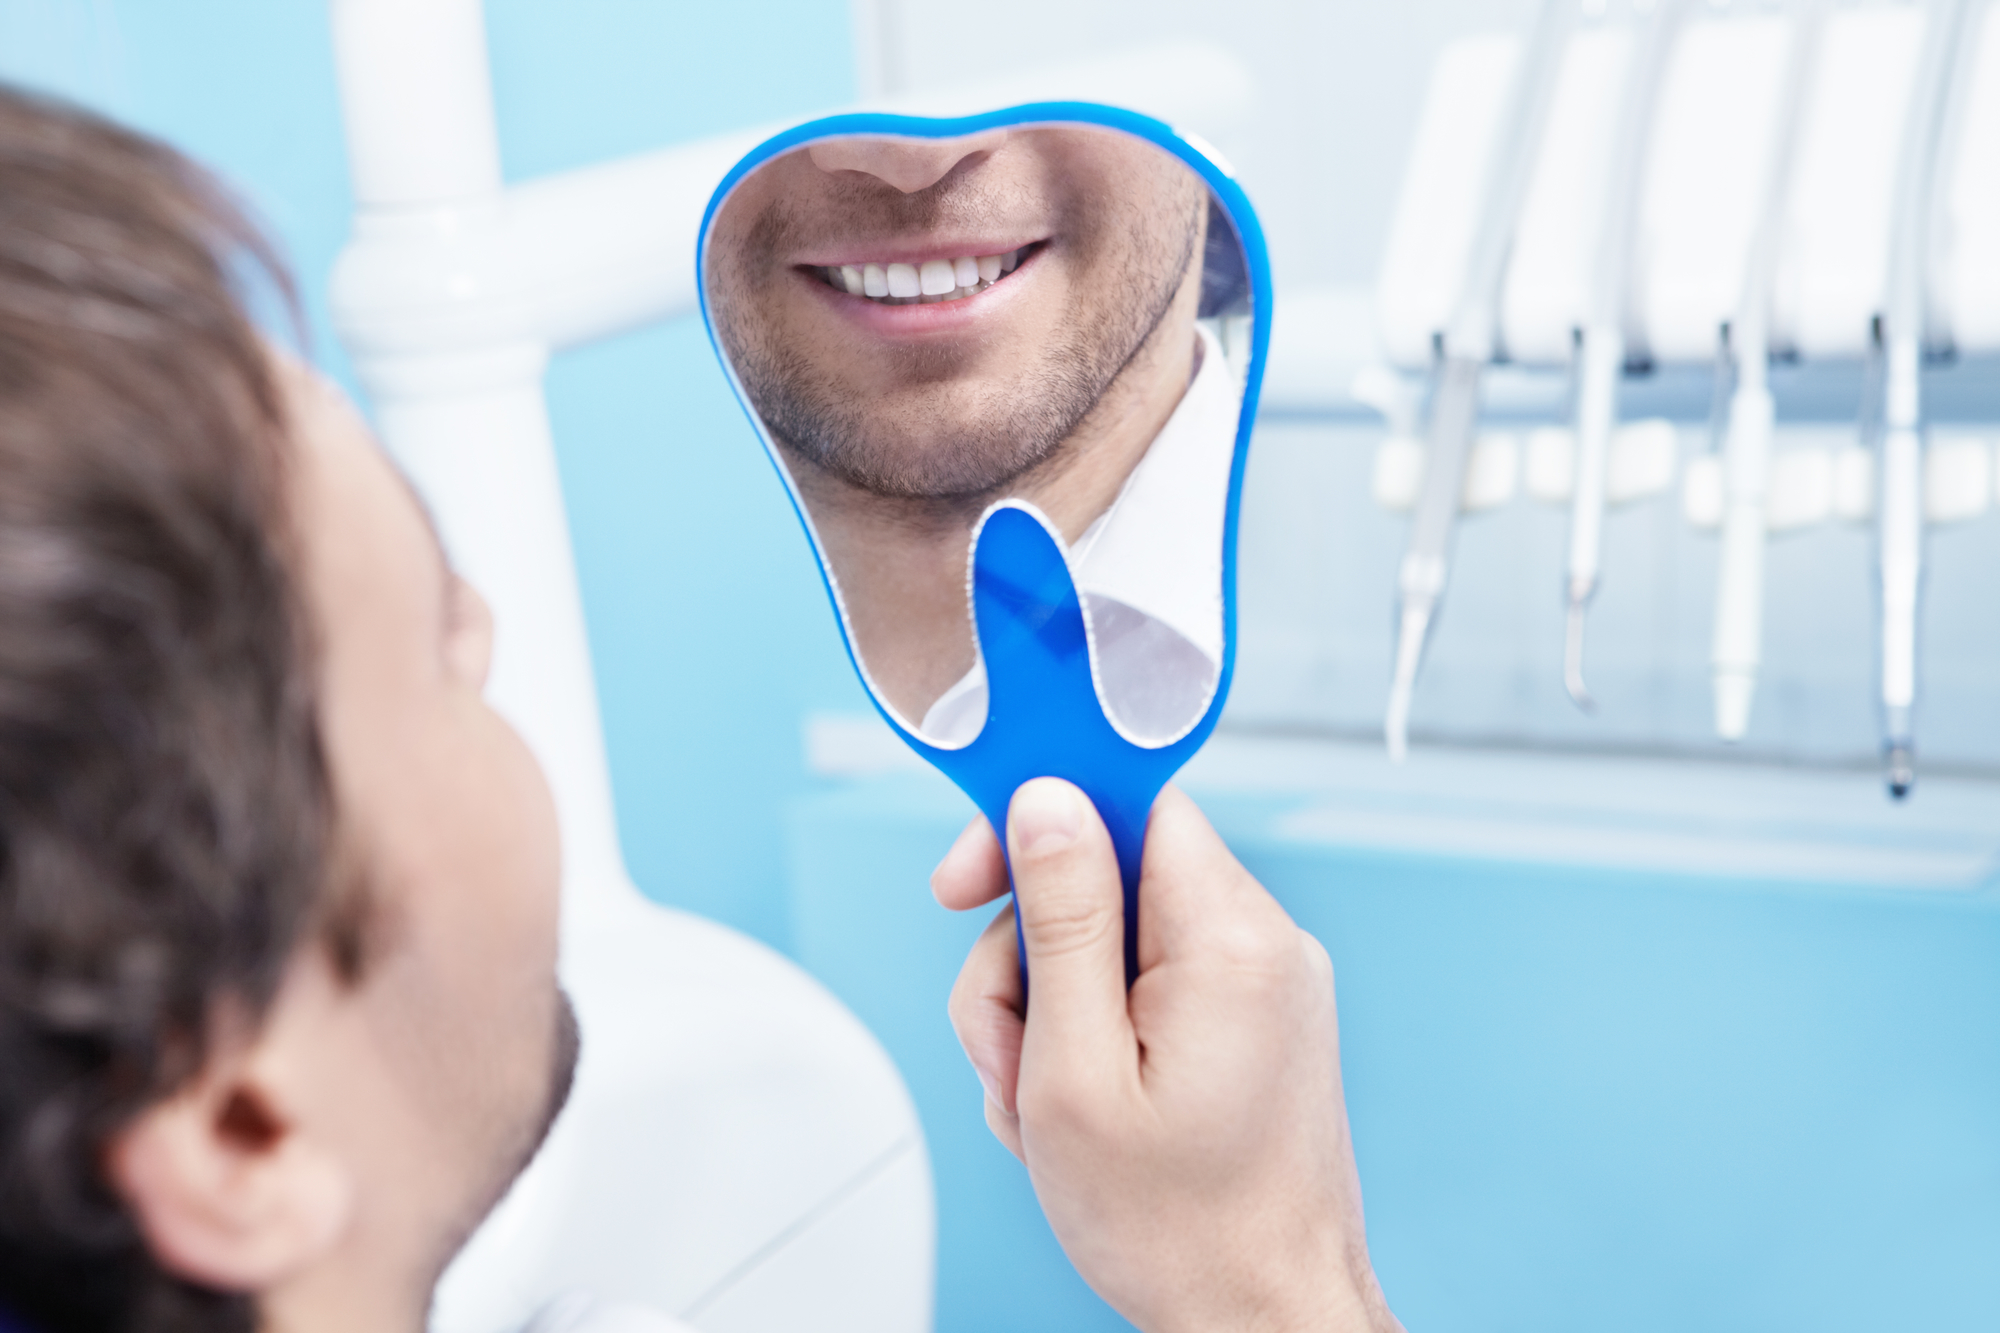 Where can I get teeth whitening in North Palm Beach?